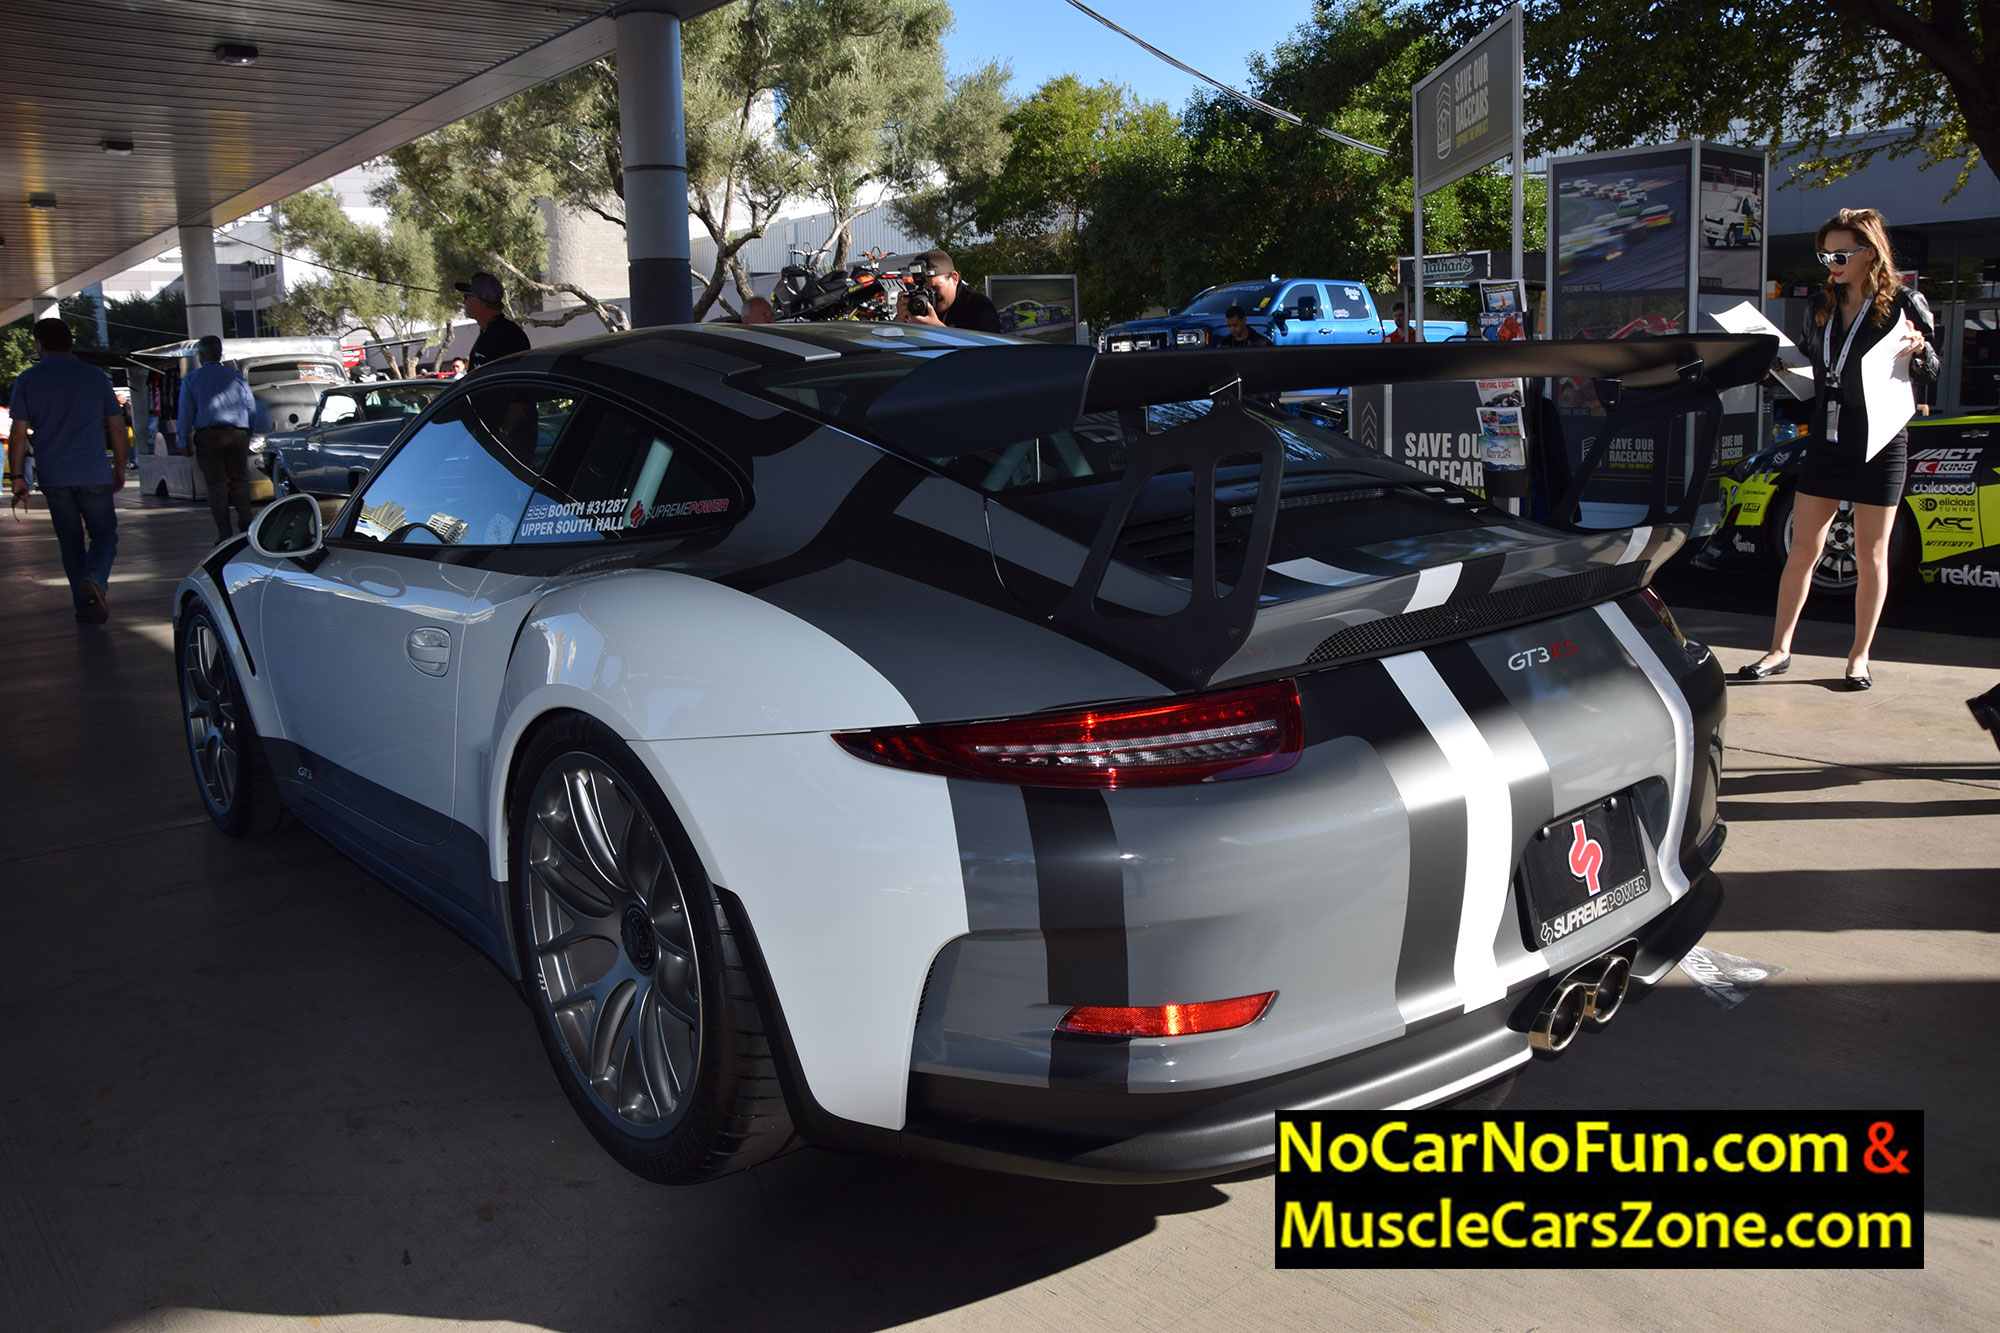 musclecarszone official judge 2016 sema show las vegas exclusive videos photos right here. Black Bedroom Furniture Sets. Home Design Ideas